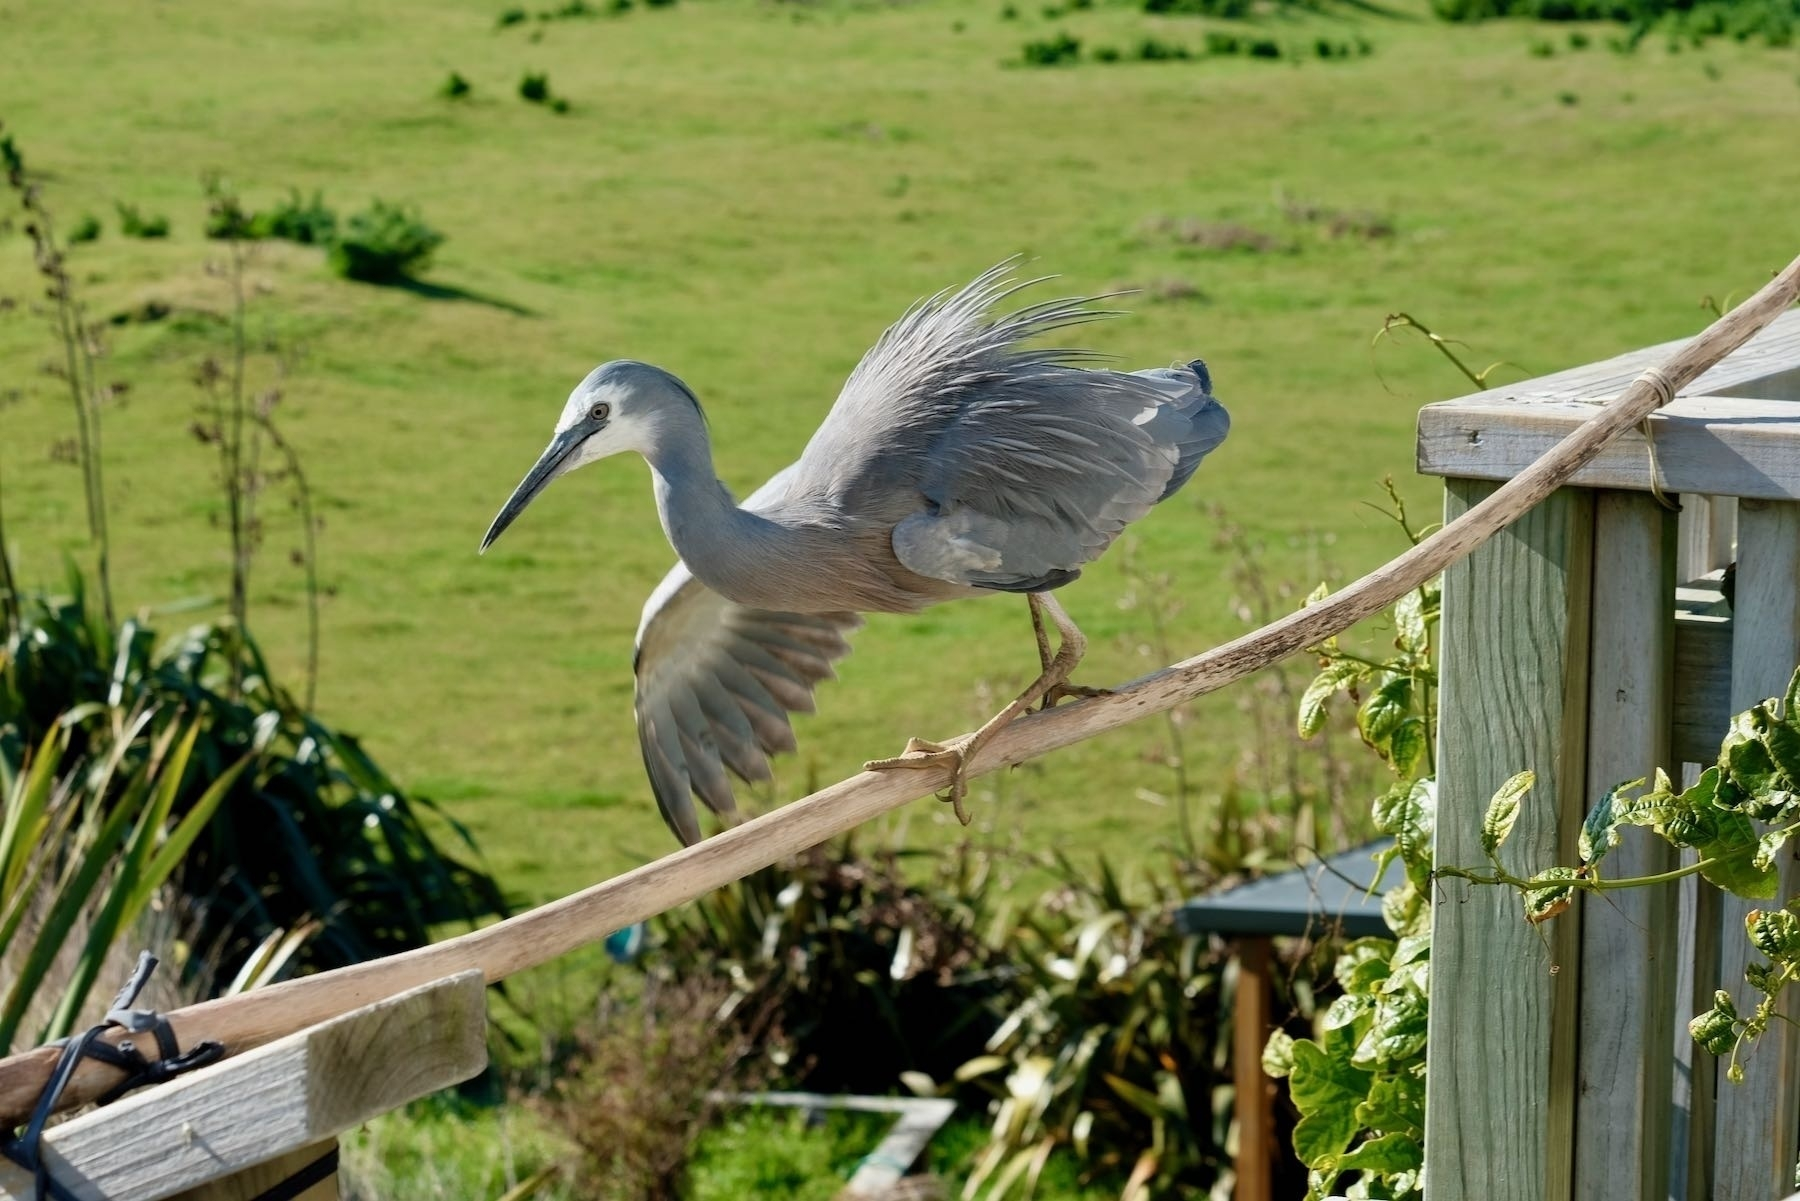 White-faced heron on a horizontal pole, using one wing to balance.